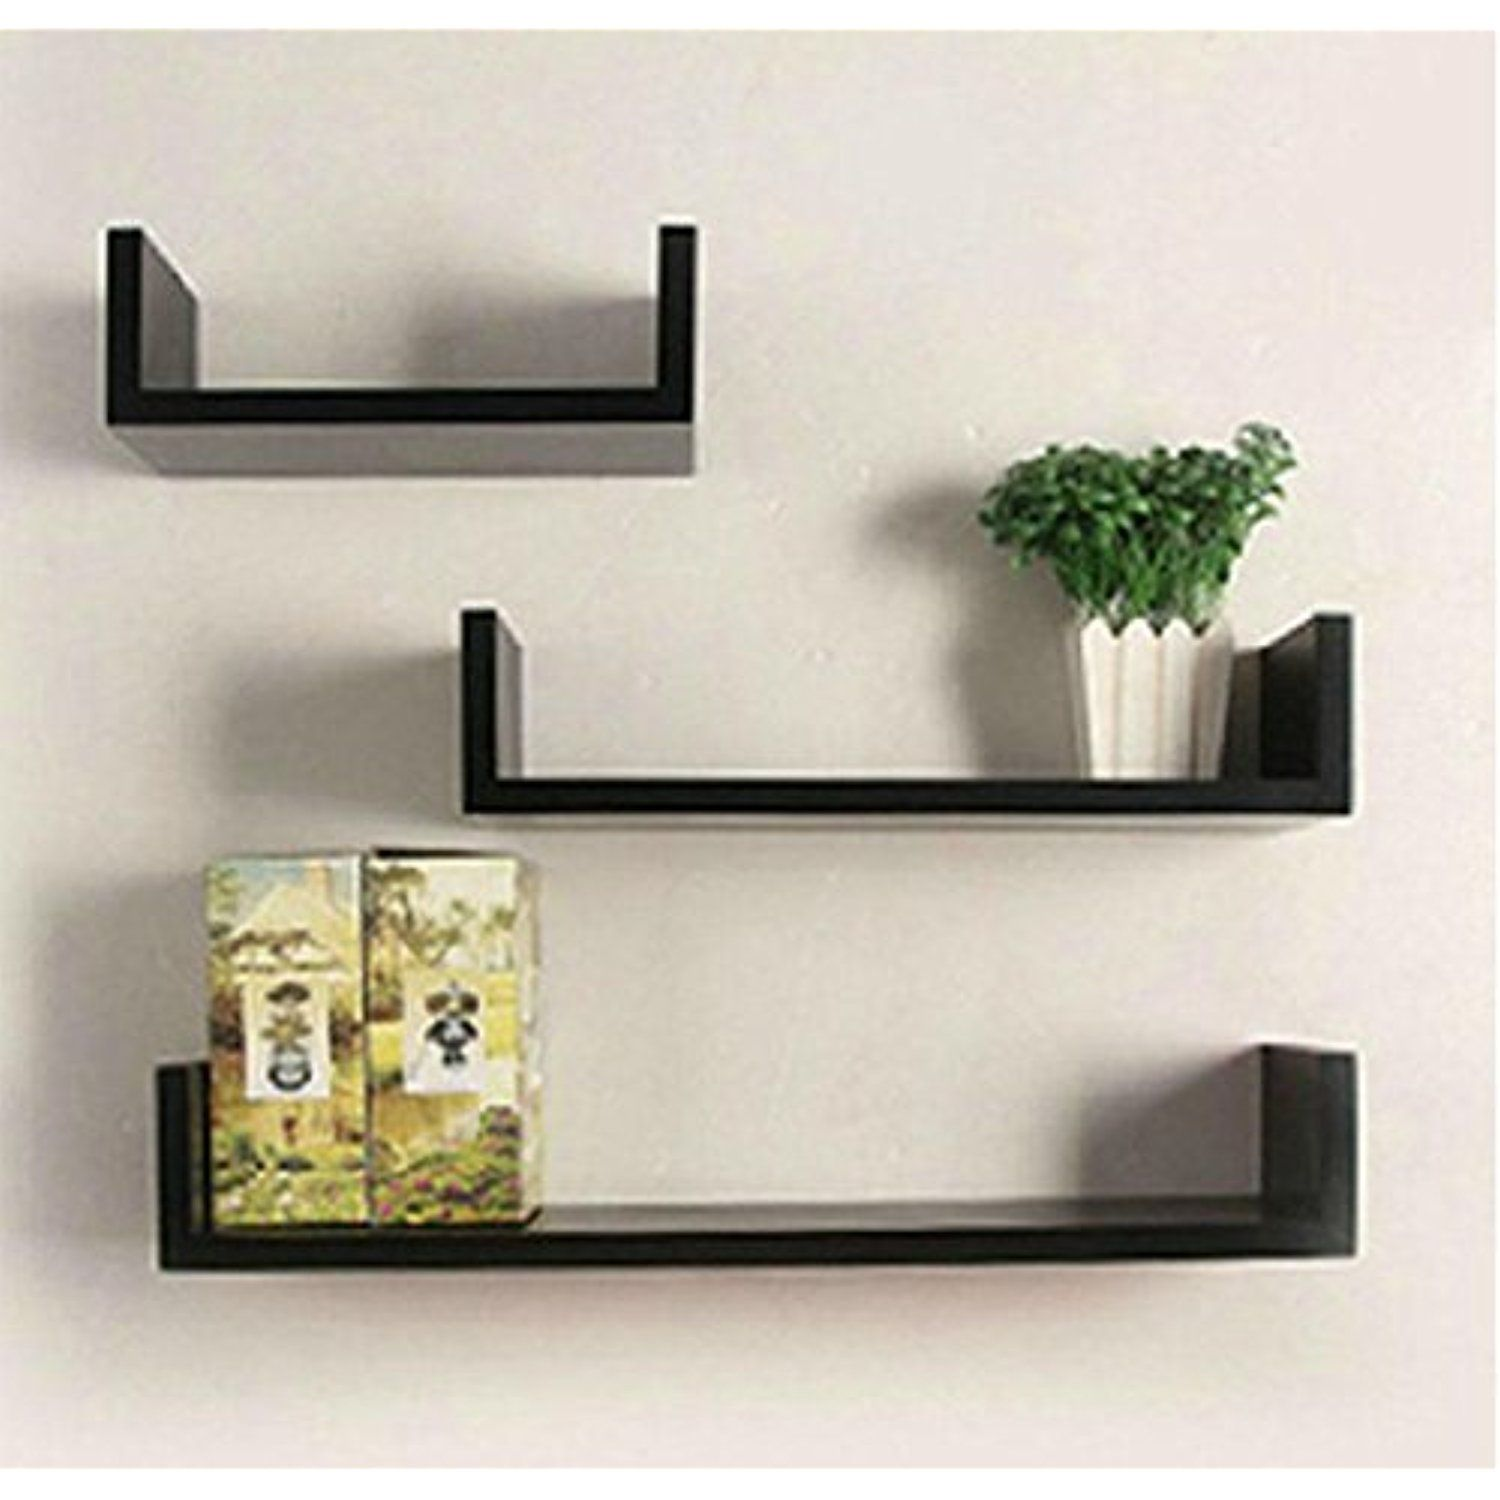 Fashine set of 3 u shape floating wall shelves modern floating shelves black more info could be found at the image url this is an affiliate link